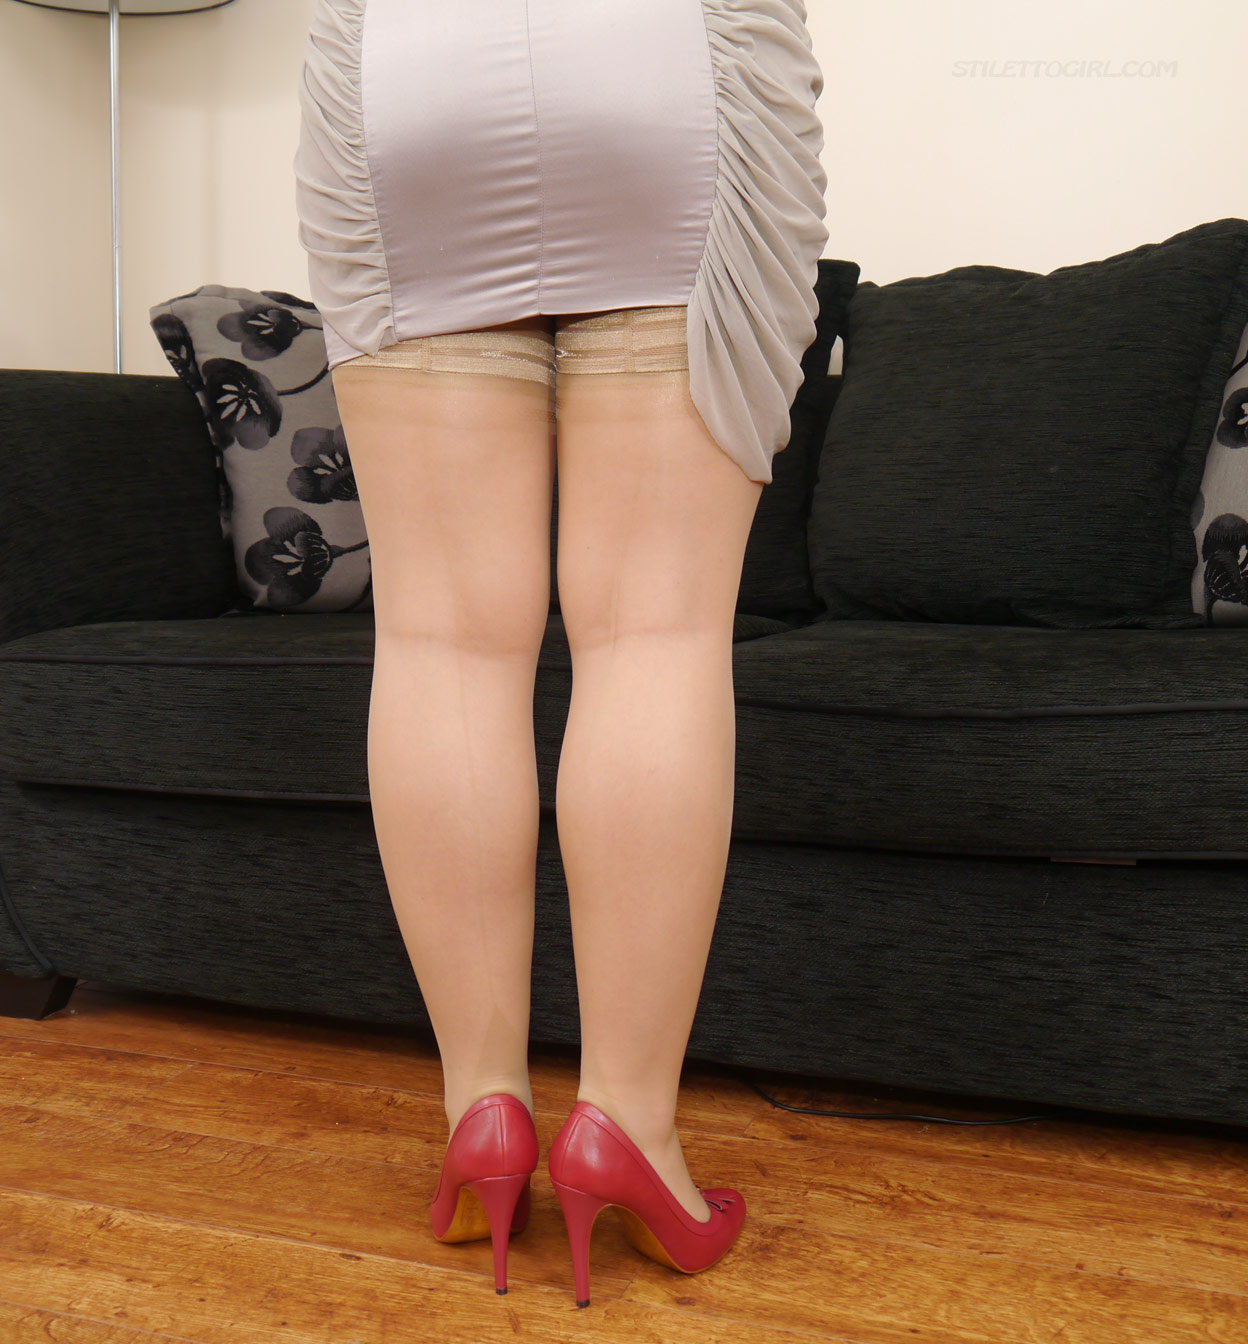 Bowed to her red nyloned legs licking her shoes 5